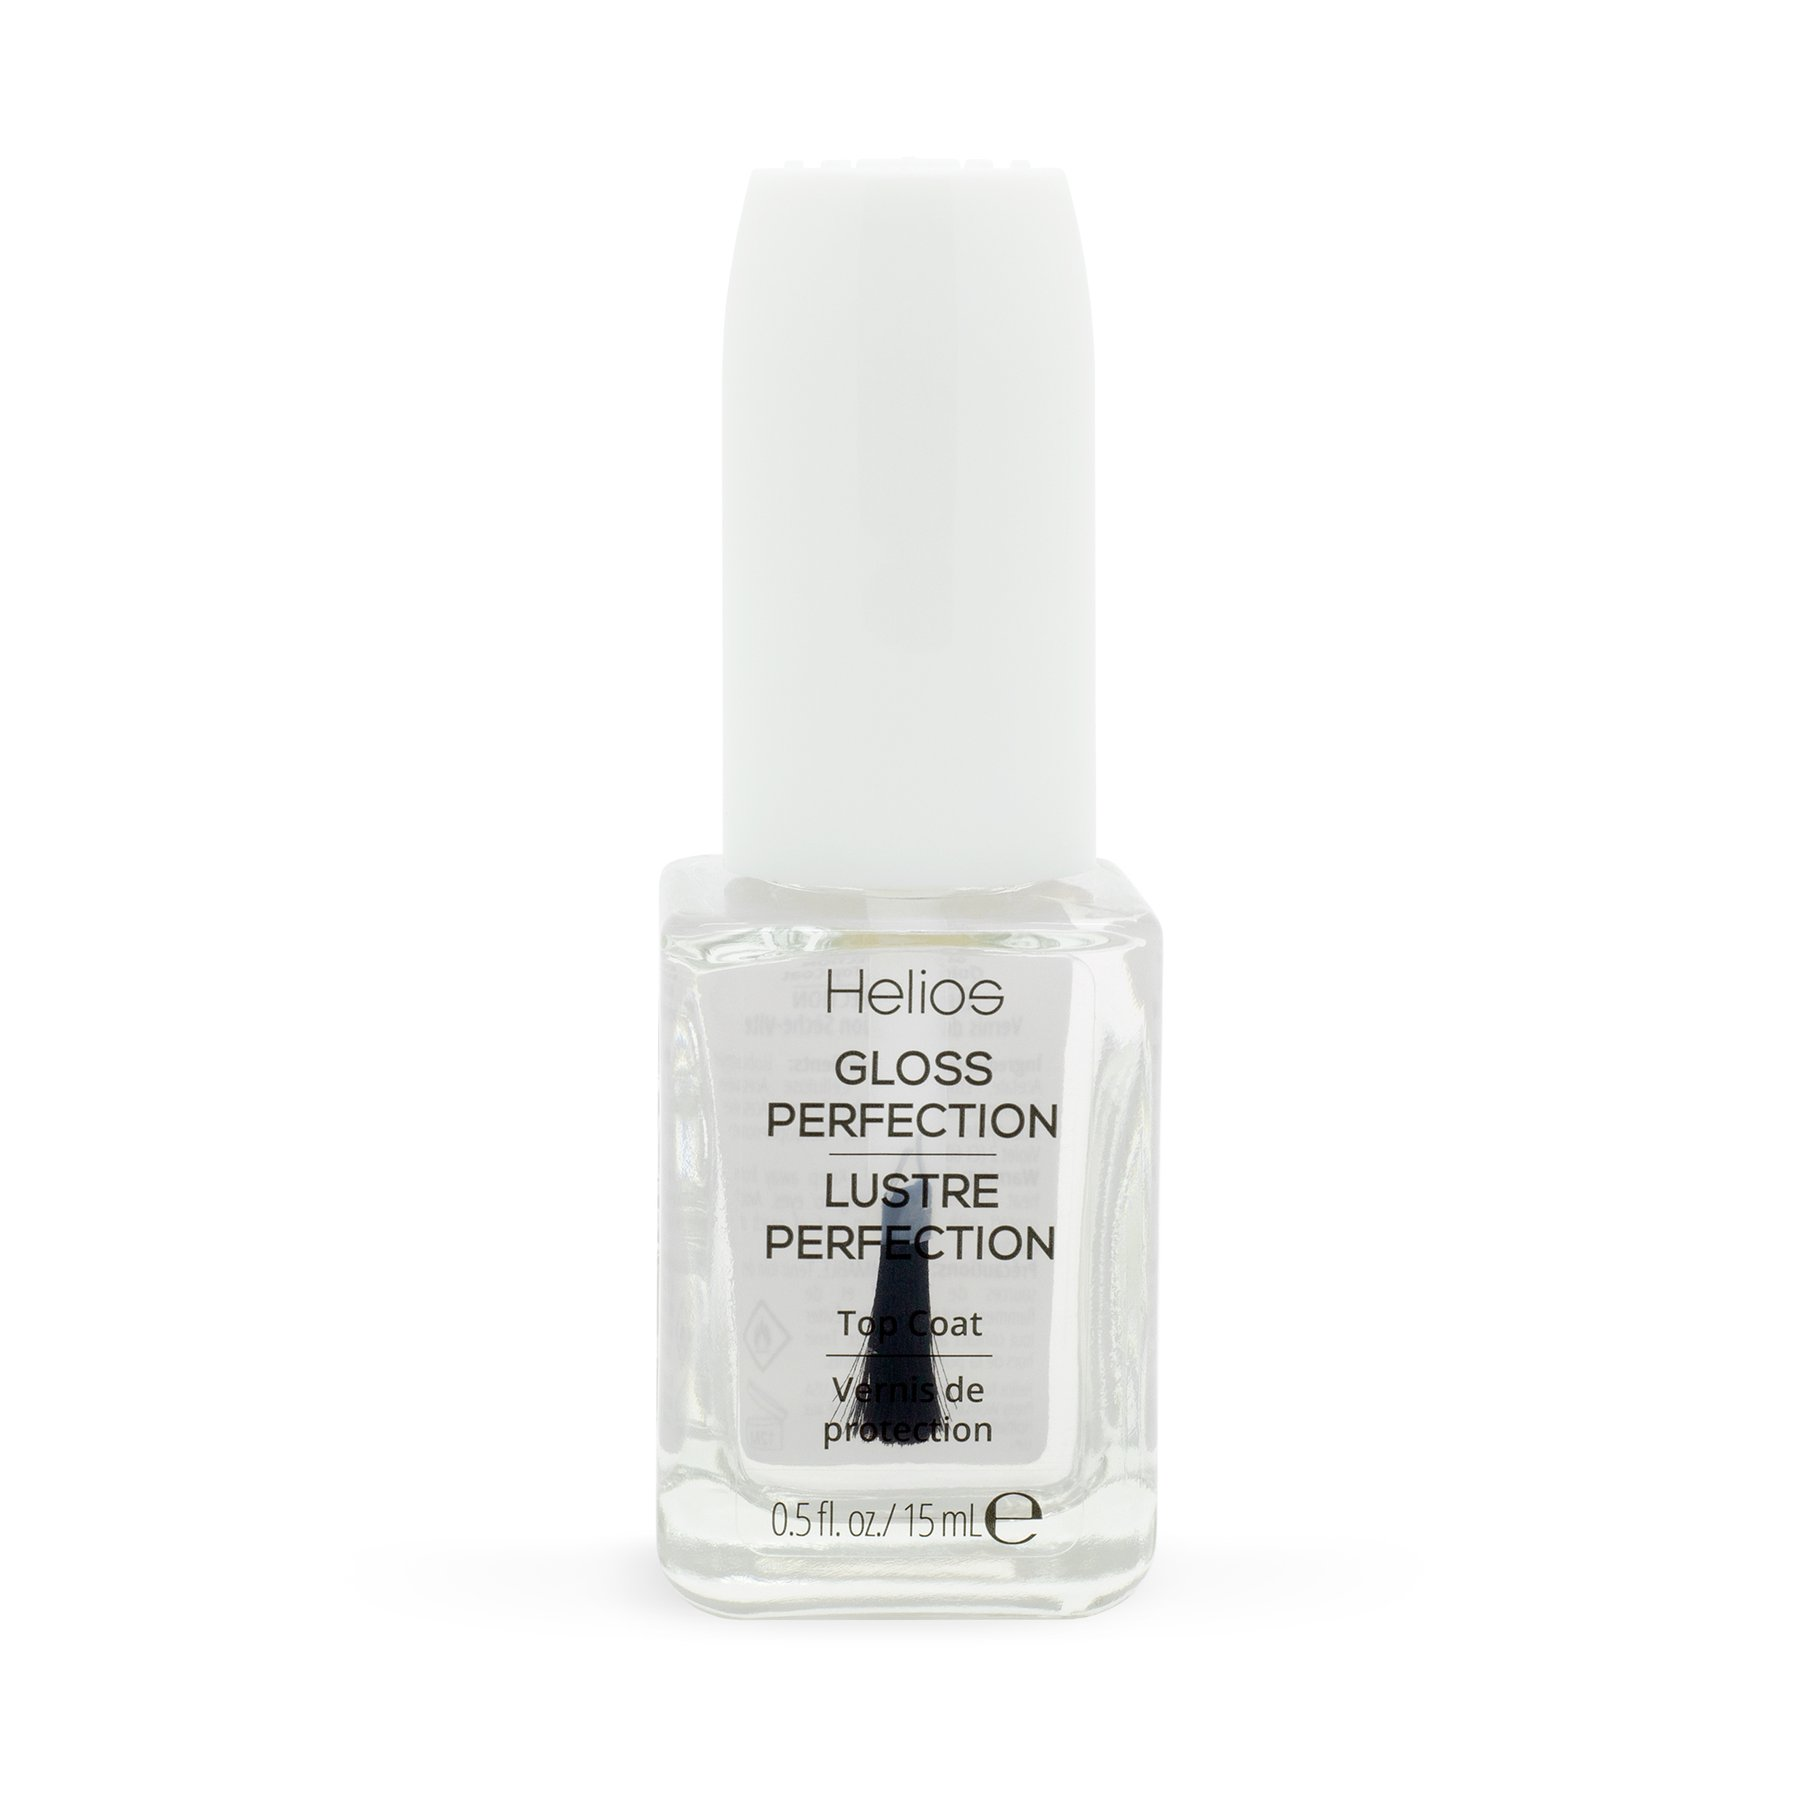 CARE GLOSS 15ML - Nails - Nail Care  dluxpro